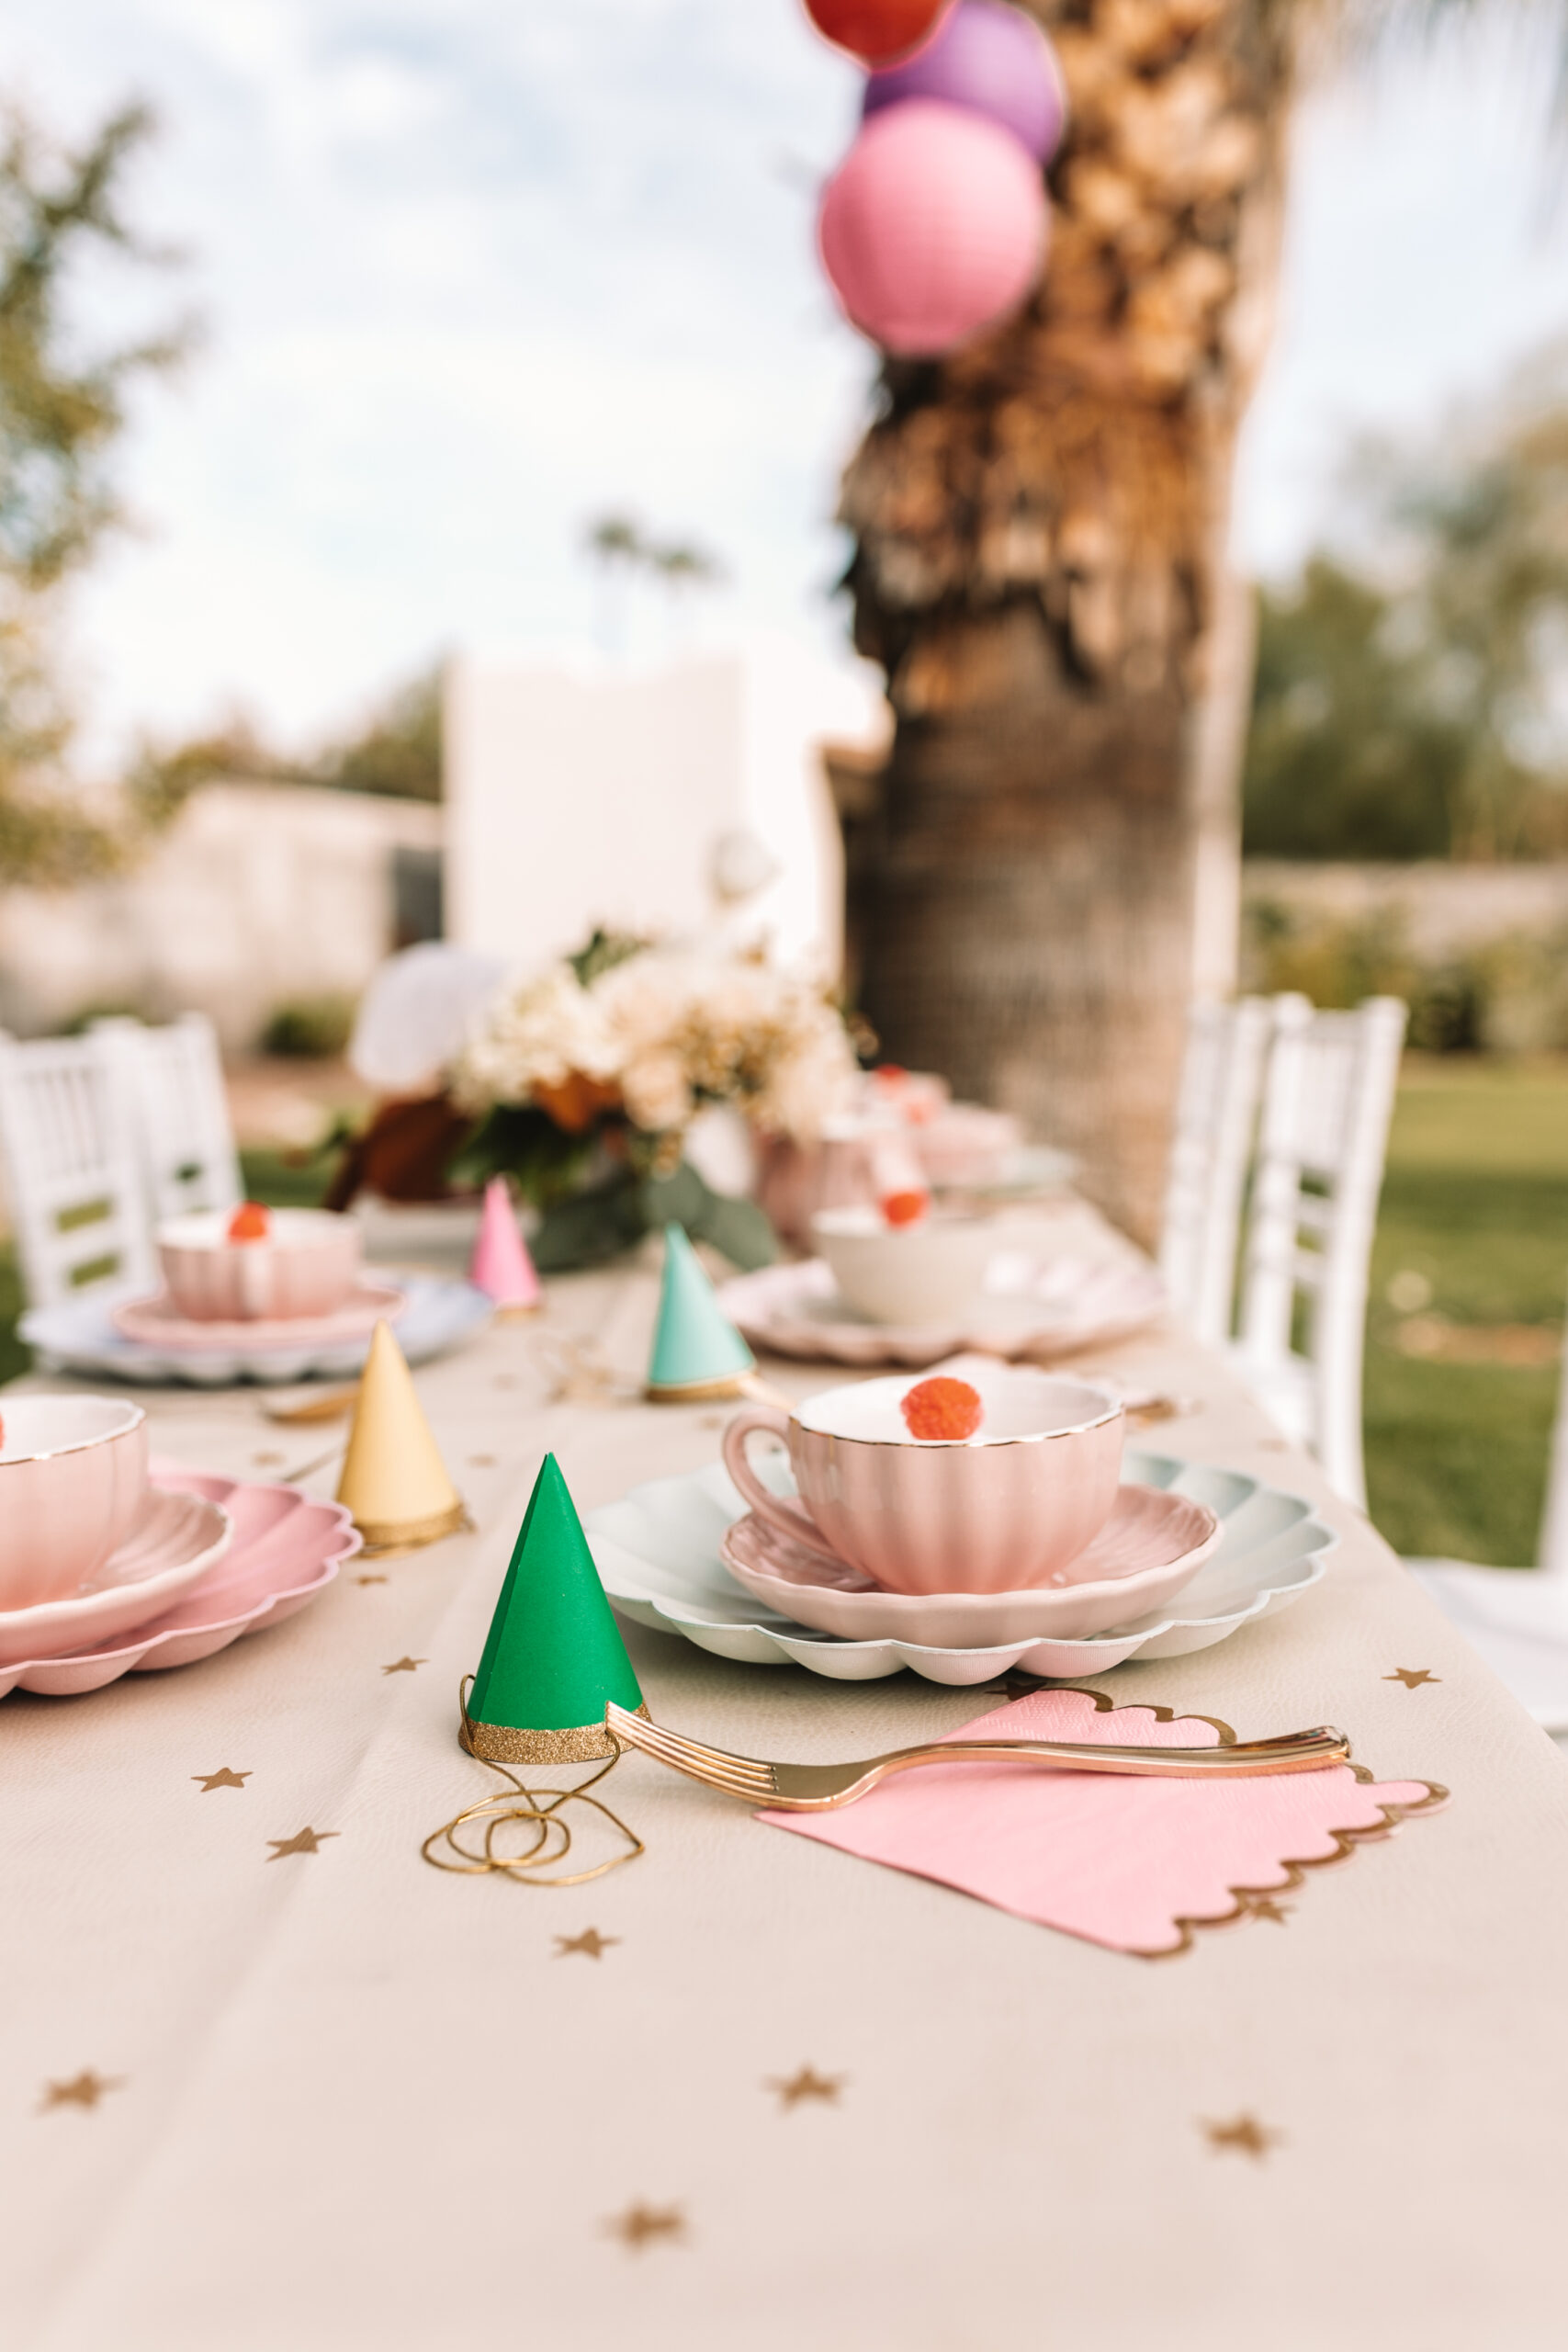 the sweetest scalloped tea set for this very merry unbirthday party #thelovedesignedlife #teaparty #madhatterteaparty